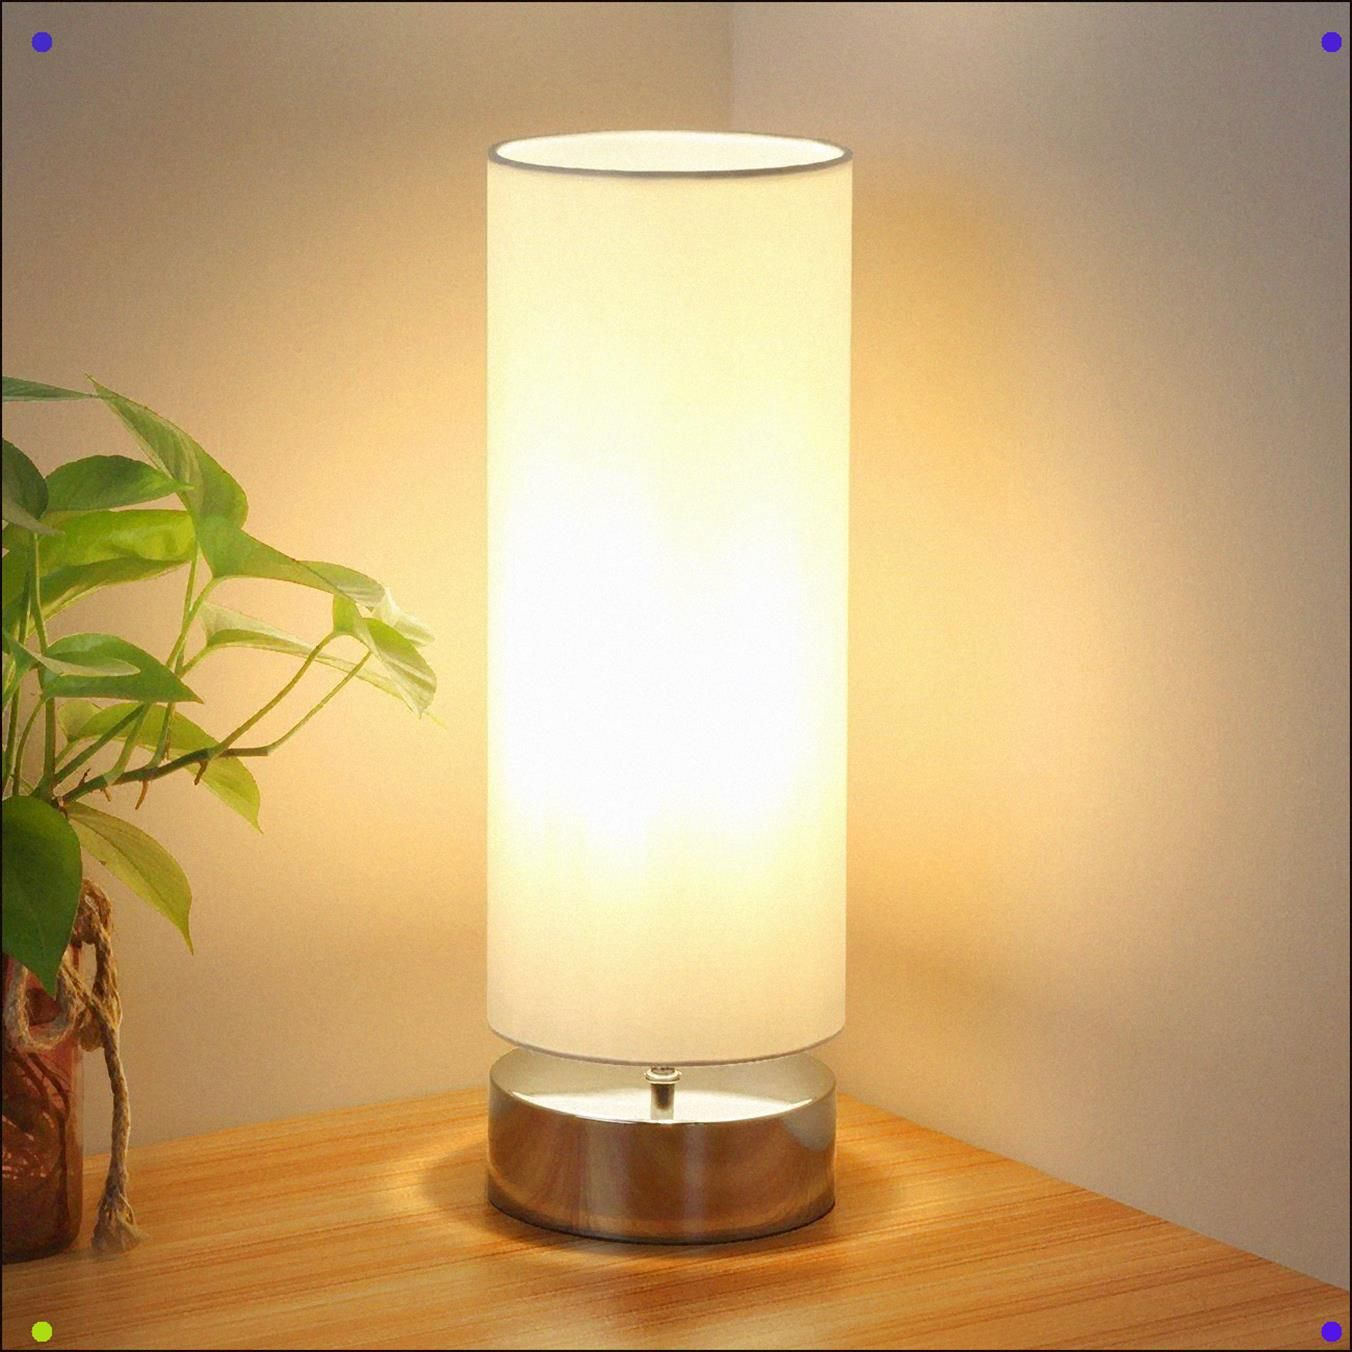 Dimmable Touch Light With Cylinder Lamp Shade Night Light Nightstand Lamp Home Office Light Desk Des In 2020 Modern Desk Lamp Bedside Table Lamps Touch Table Lamps